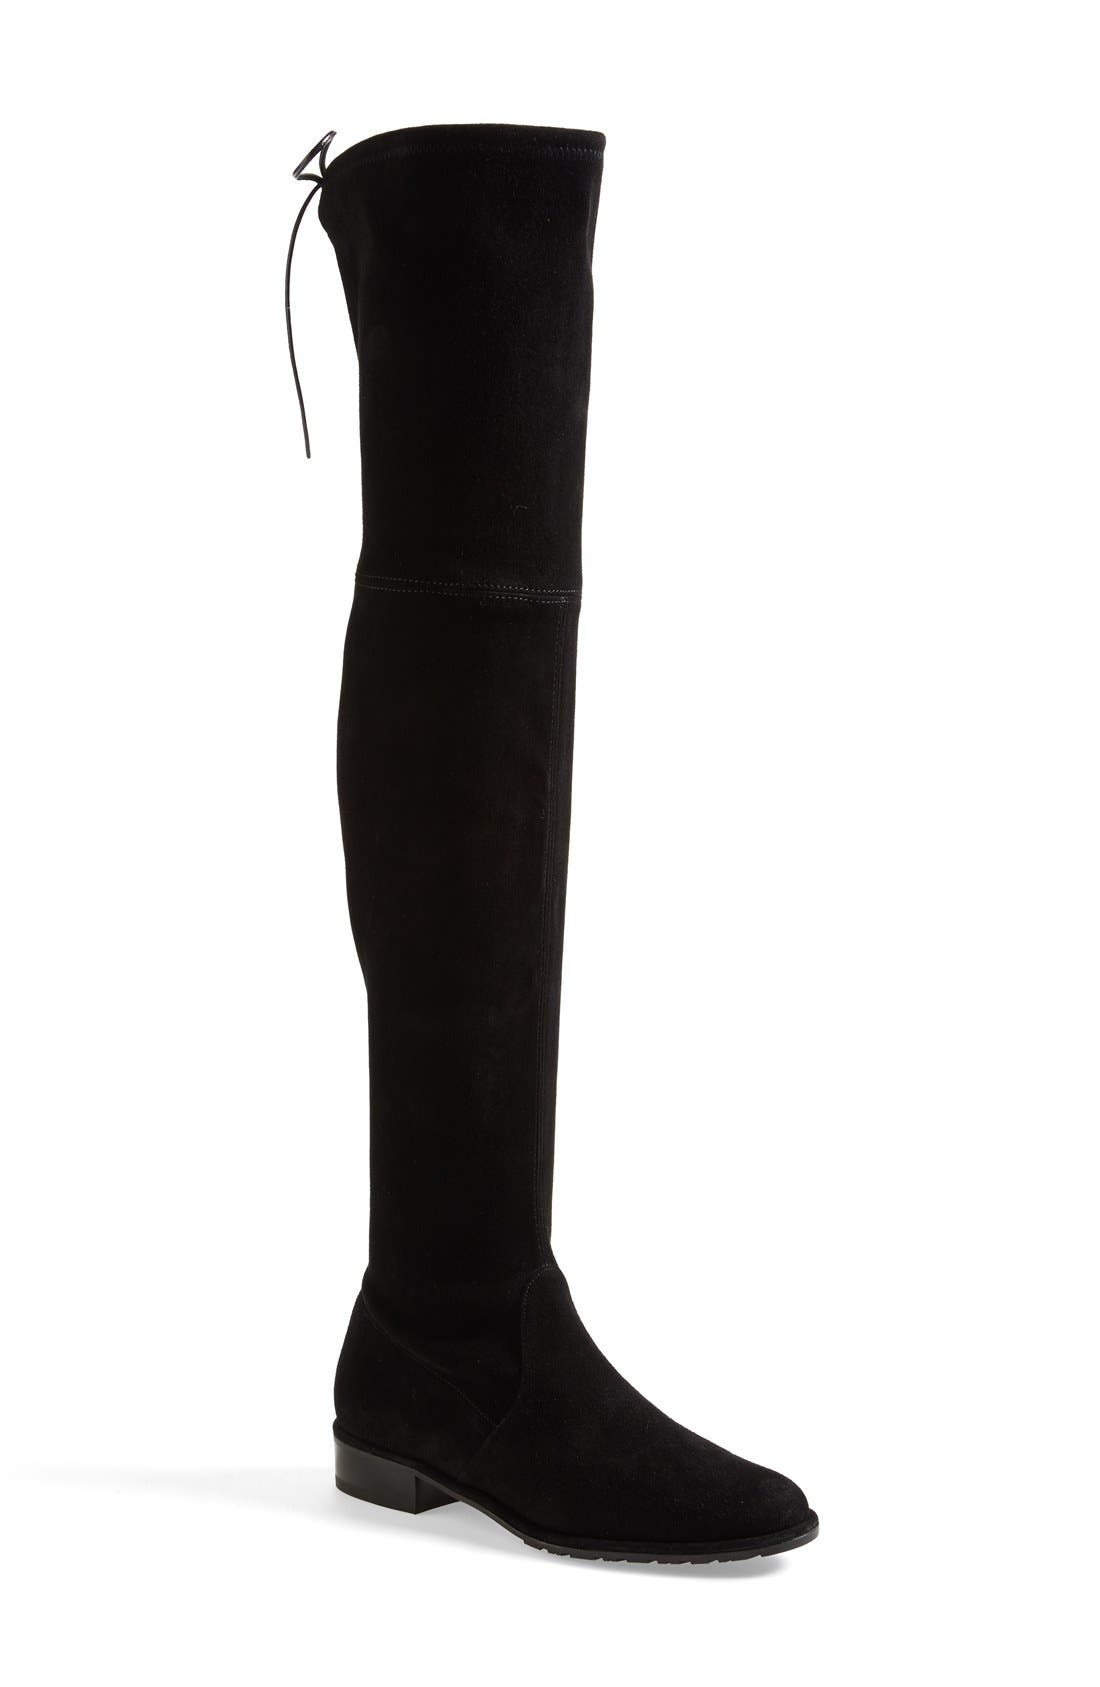 Main Image - Stuart Weitzman 'Lowland' Over the Knee Boot (Women)